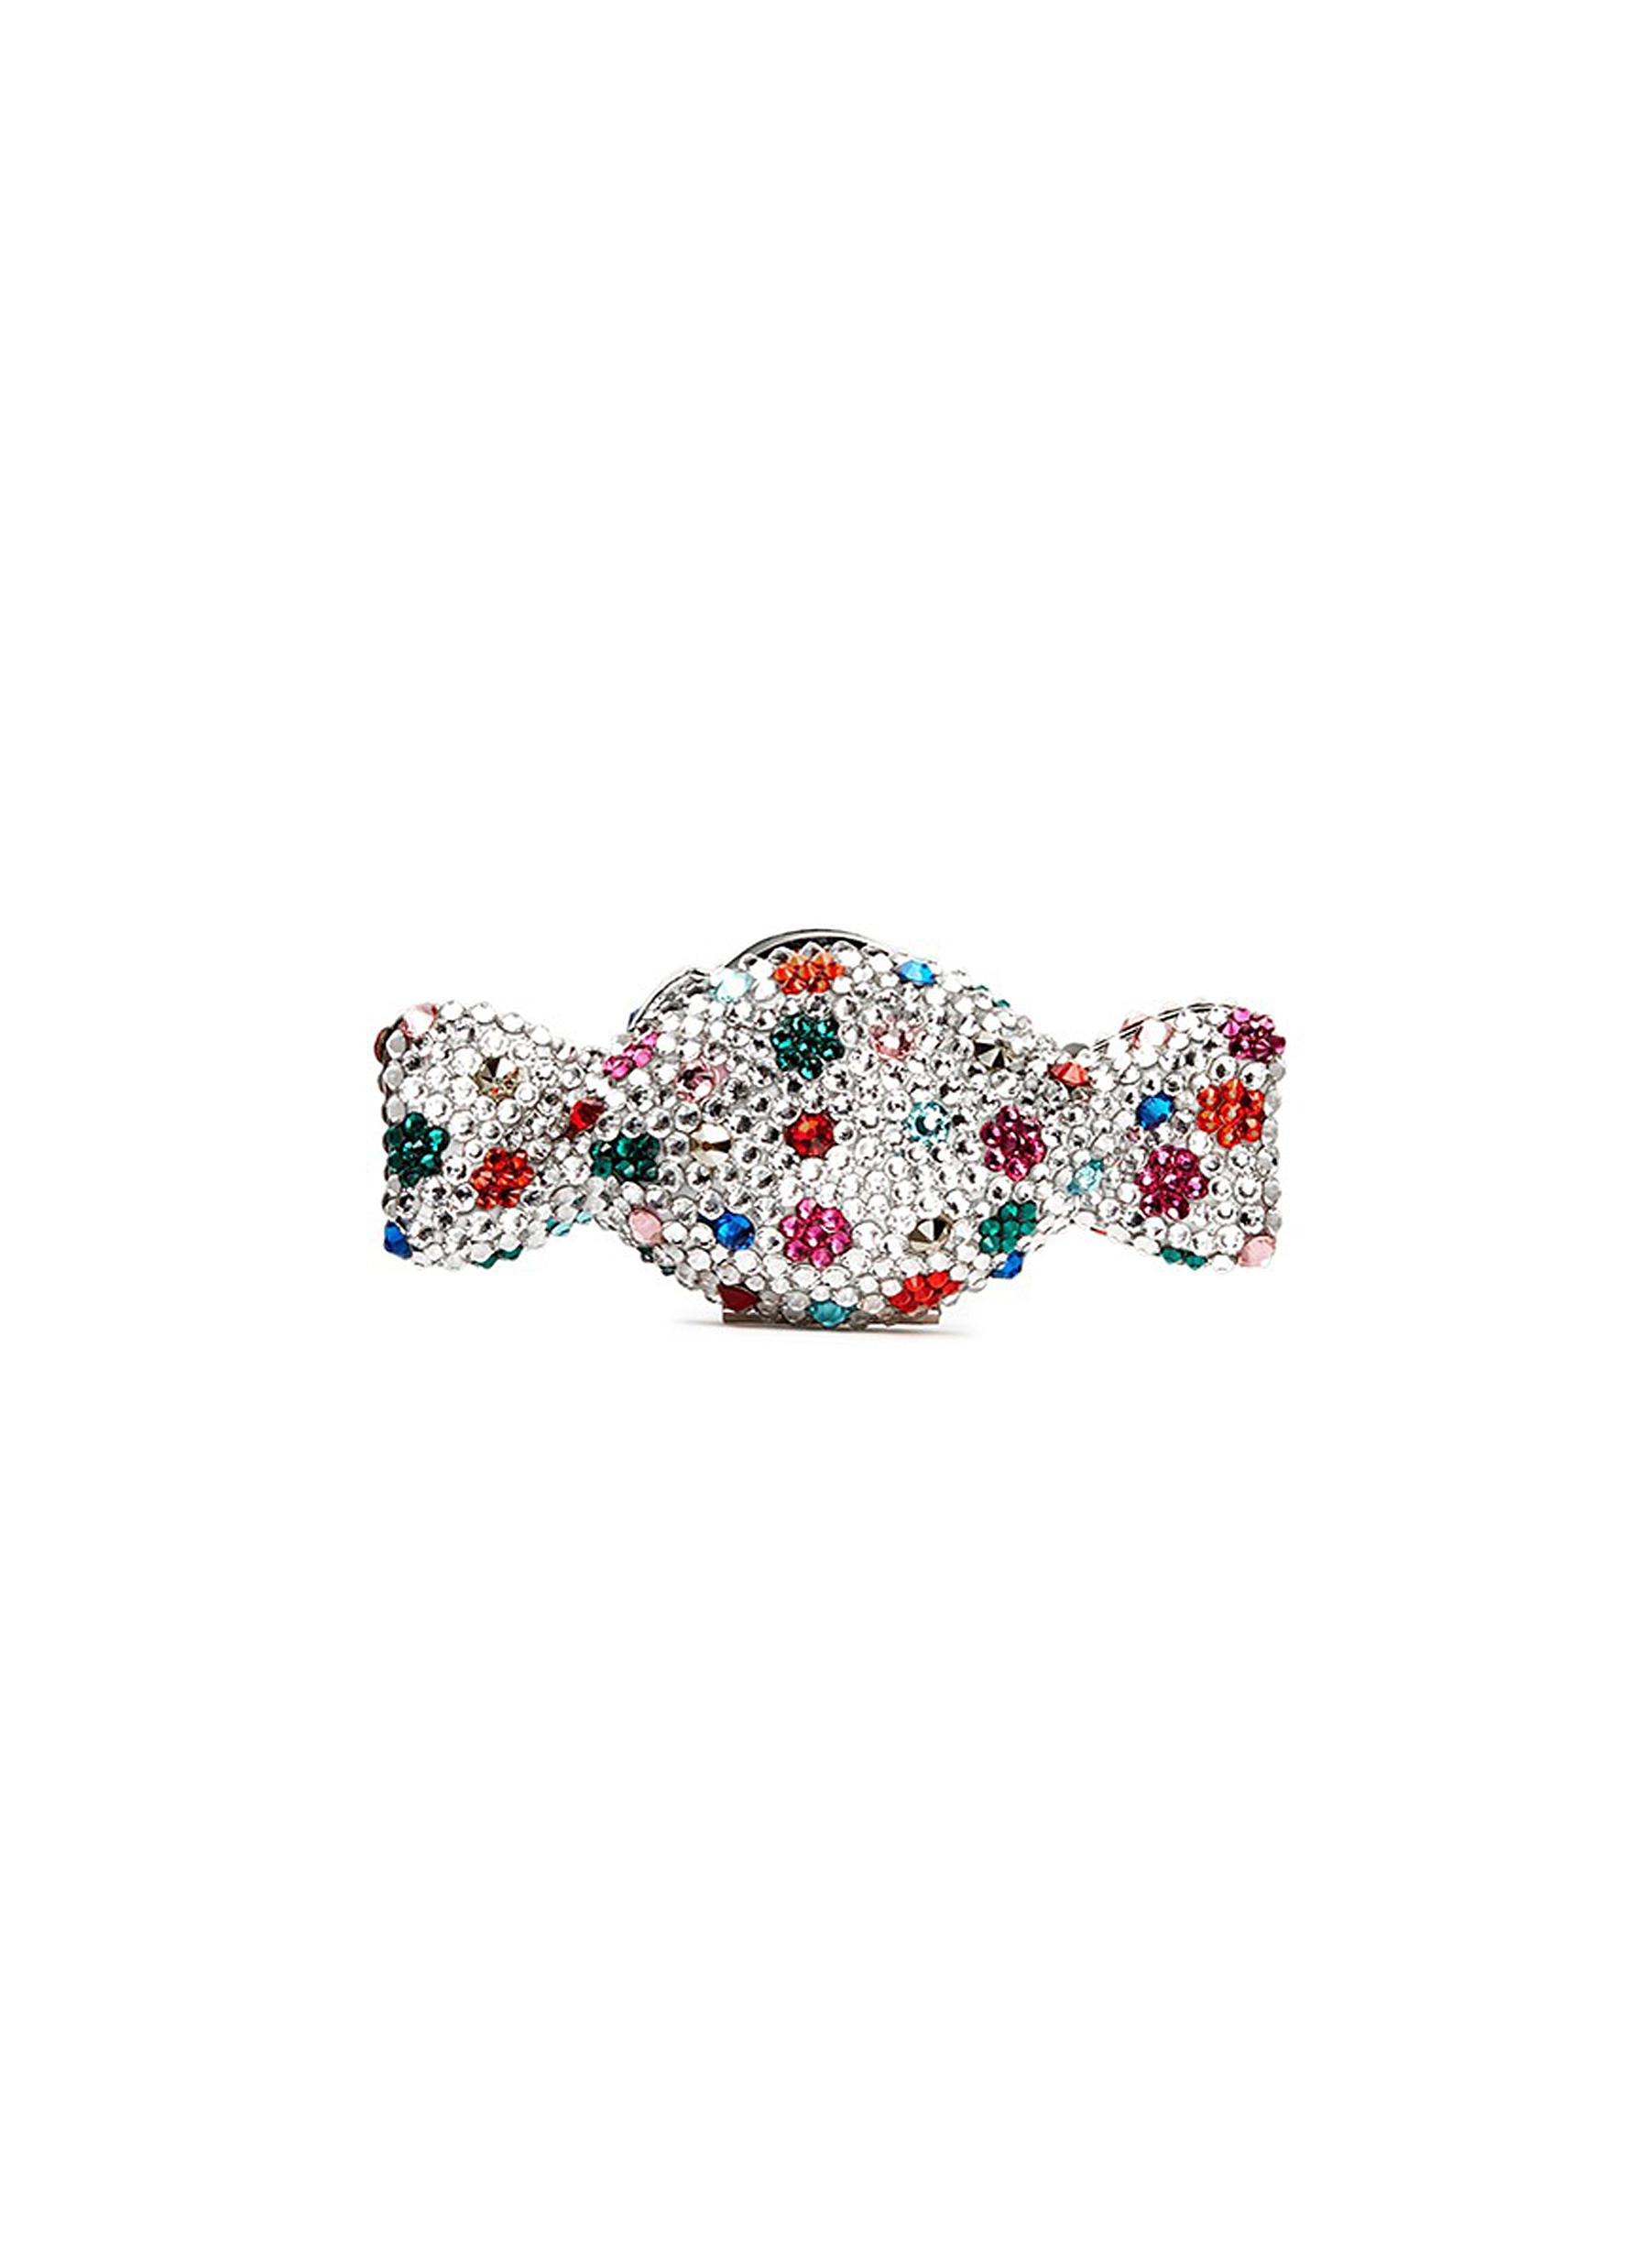 Candy polka dot crystal pill box by Judith Leiber